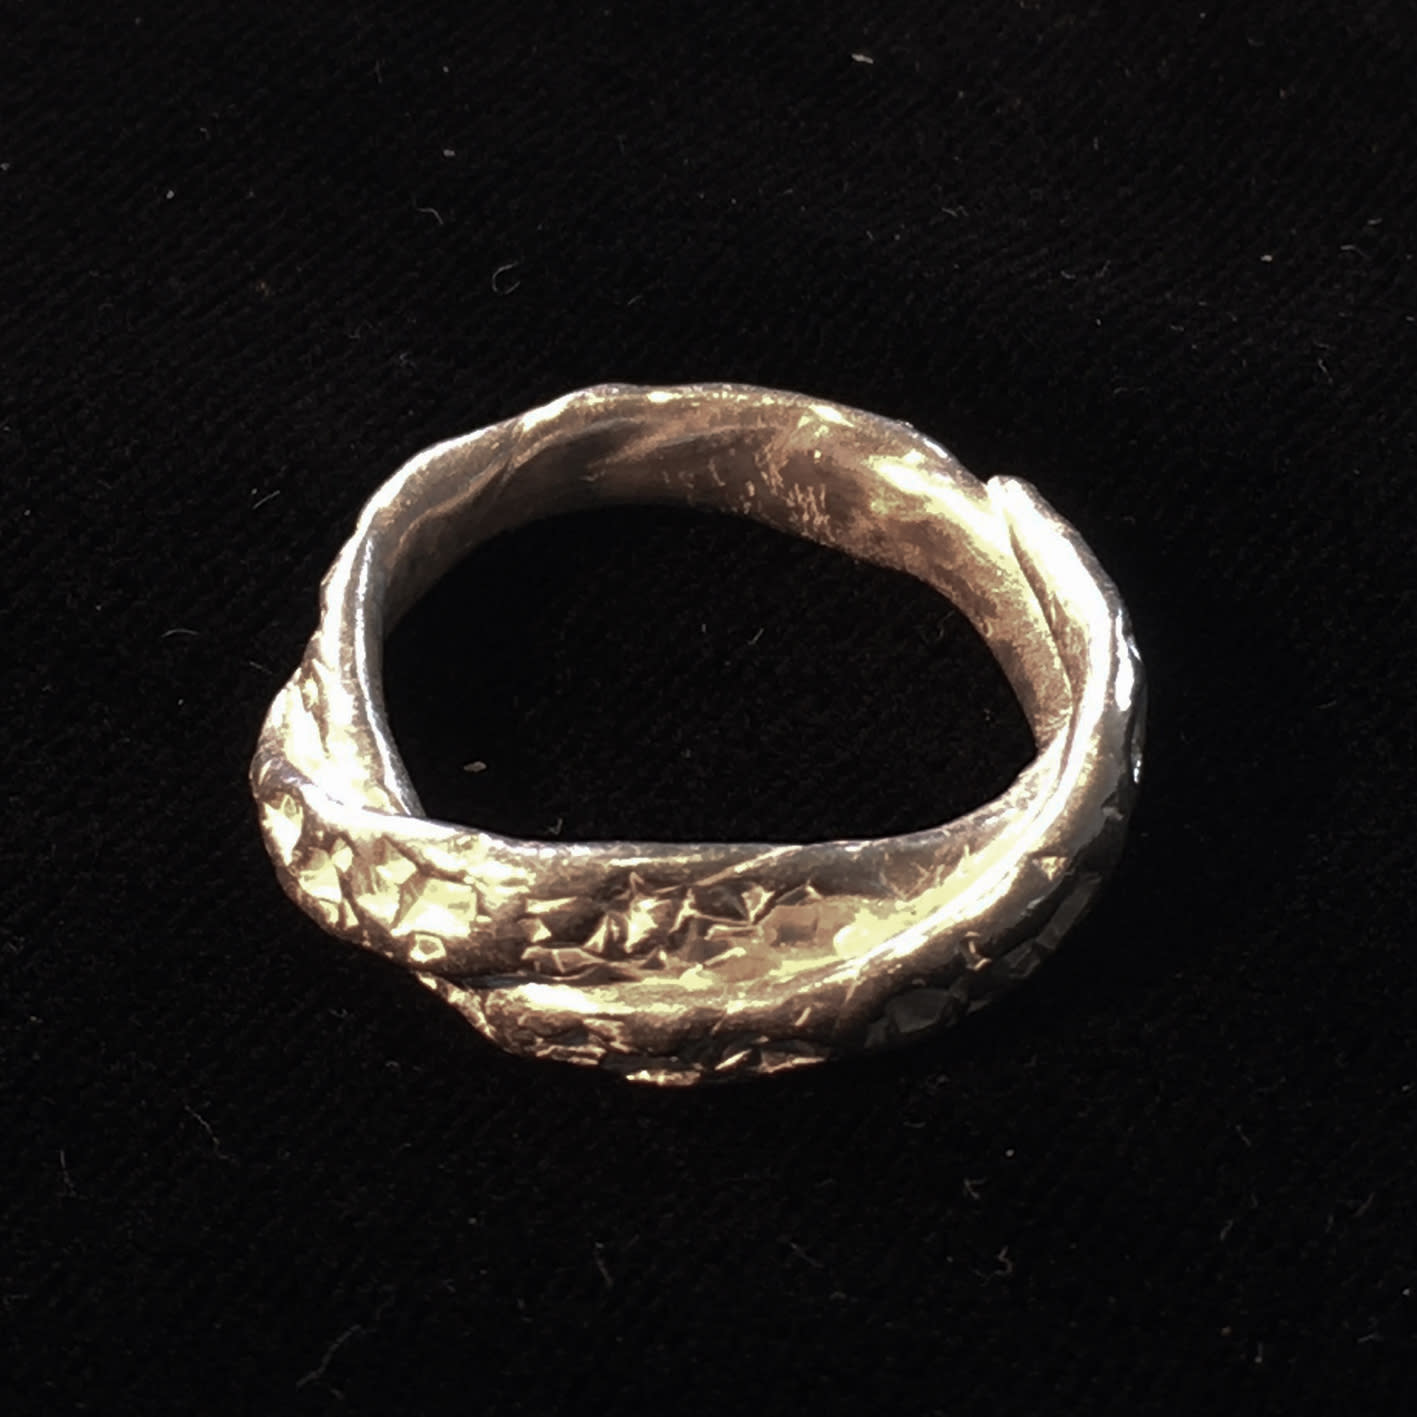 "<span class=""link fancybox-details-link""><a href=""/artists/186-helen-feiler/works/6756-helen-feiler-silver-shell-ring-narrow-2019/"">View Detail Page</a></span><div class=""artist""><strong>Helen Feiler</strong></div> <div class=""title""><em>Silver 'Shell' Ring - narrow</em>, 2019</div> <div class=""medium"">silver</div><div class=""price"">£130.00</div><div class=""copyright_line"">Own Art: £13.00 x 10 monthly payments</div>"